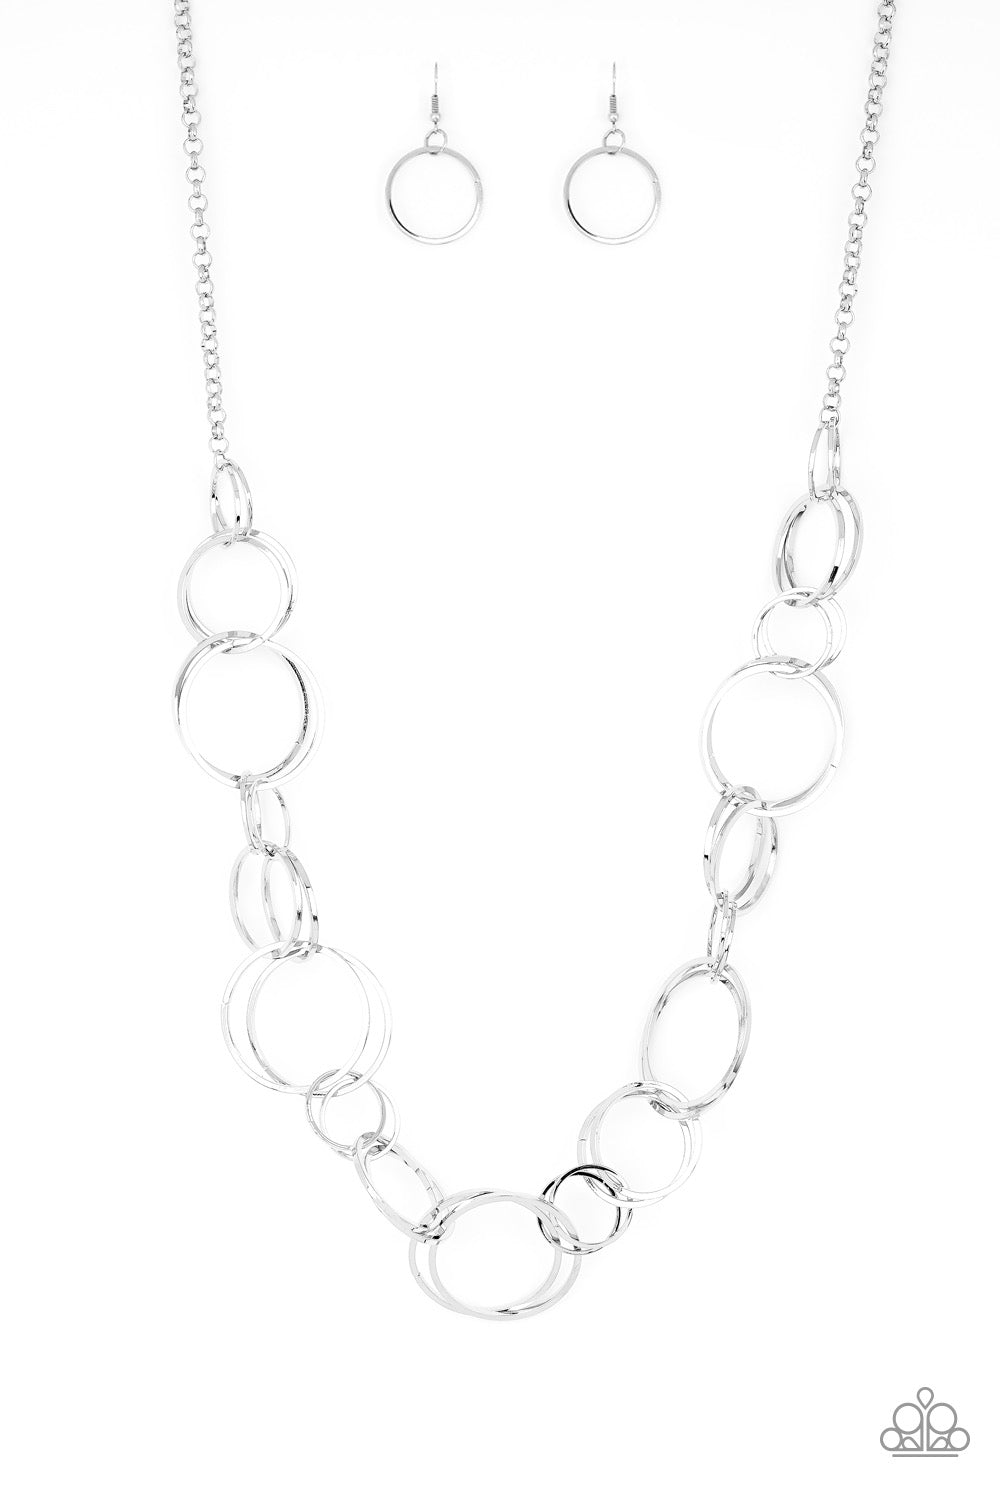 Natural-Born RINGLEADER - Silver Hoop Necklace - Paparazzi Accessories